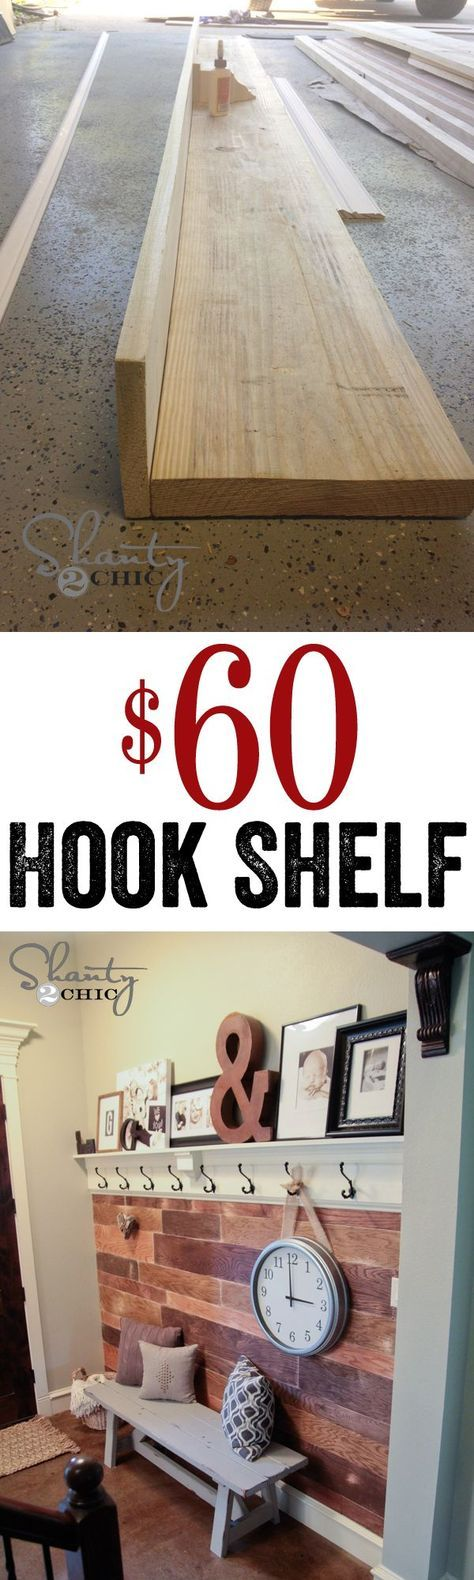 DIY Easy and Cheap Hook Shelf for under $60!  Perfect for any wall!! Maybe Jason could build this for our entryway!